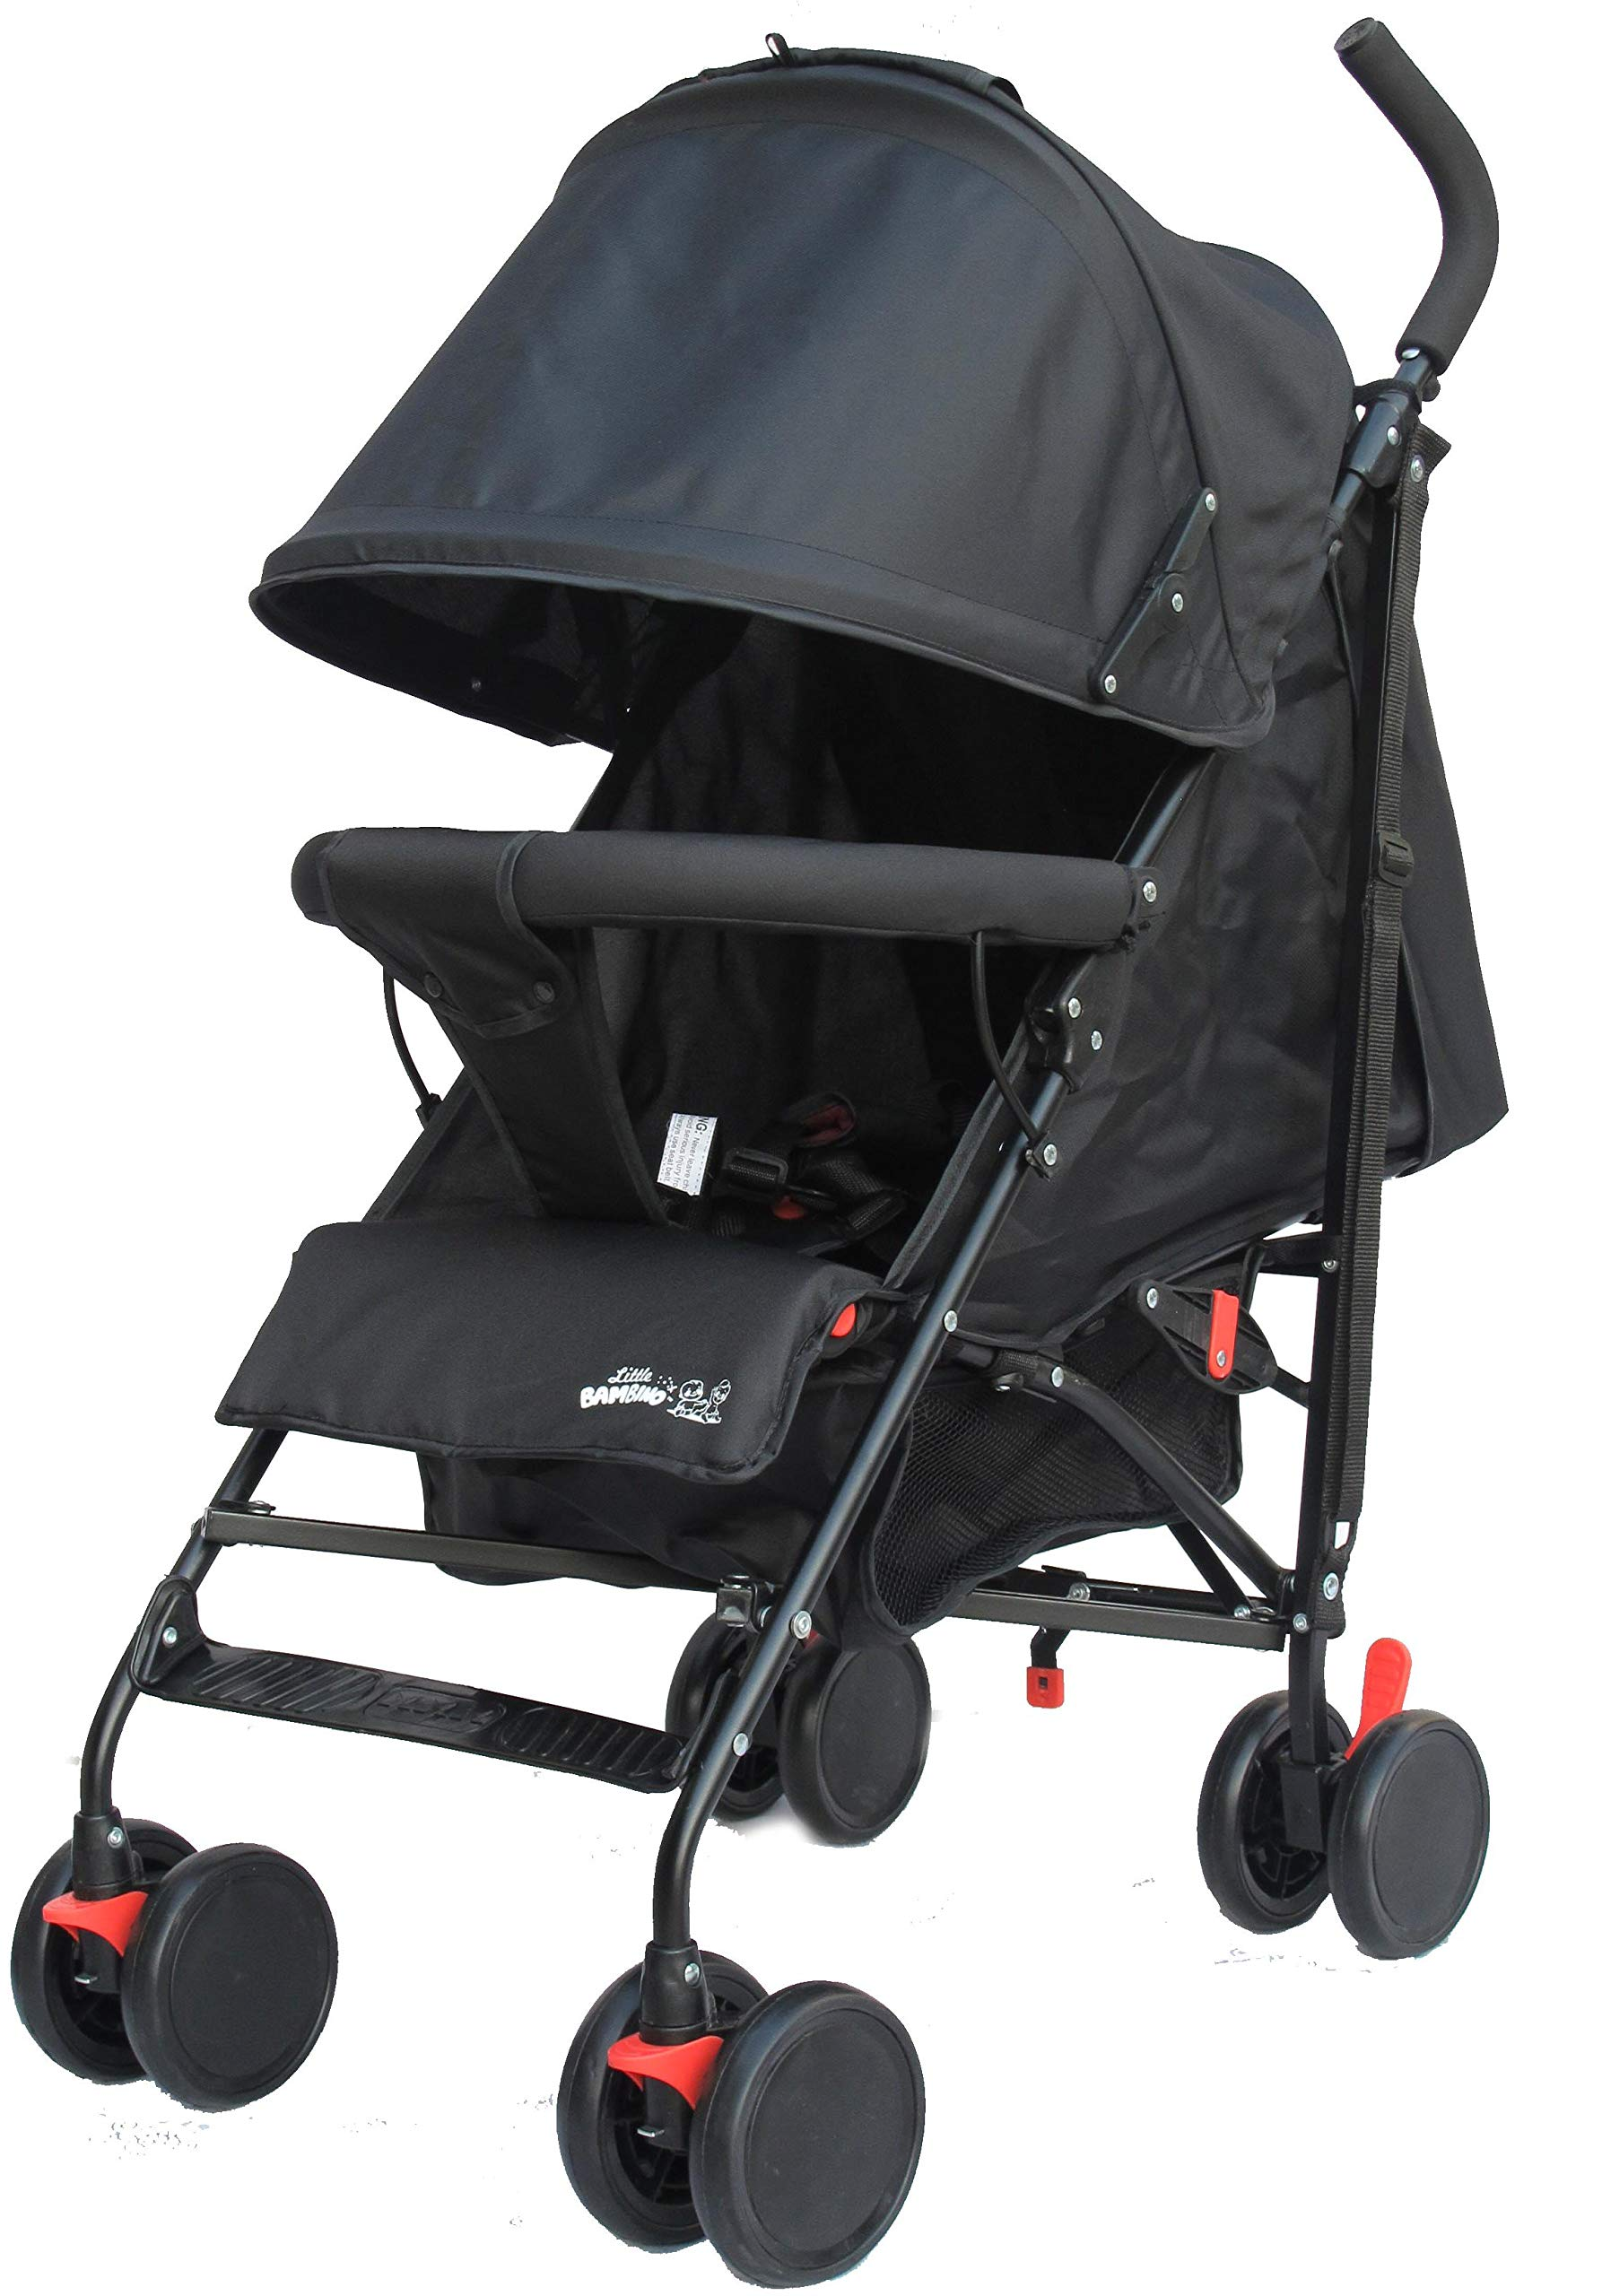 Stroller for Kids Lightweight Buggy Easy Fold Travel Stroller Buggy Foldable for Airplane Travel Cabin Size(Black) Little Bambino ✨Extendable upf 50+ sun canopy and built-in sun visor ✨EASY USAGE - One-hand foldable buggy makes taking your baby for travels or walks a simple pleasure. It could stand on its own so you could take care of your baby with less things to worry about. ✨ADJUSTABLE BACKREST - Travel stroller backrest can be adjusted. Suitable for children from 0 to 36 months 4